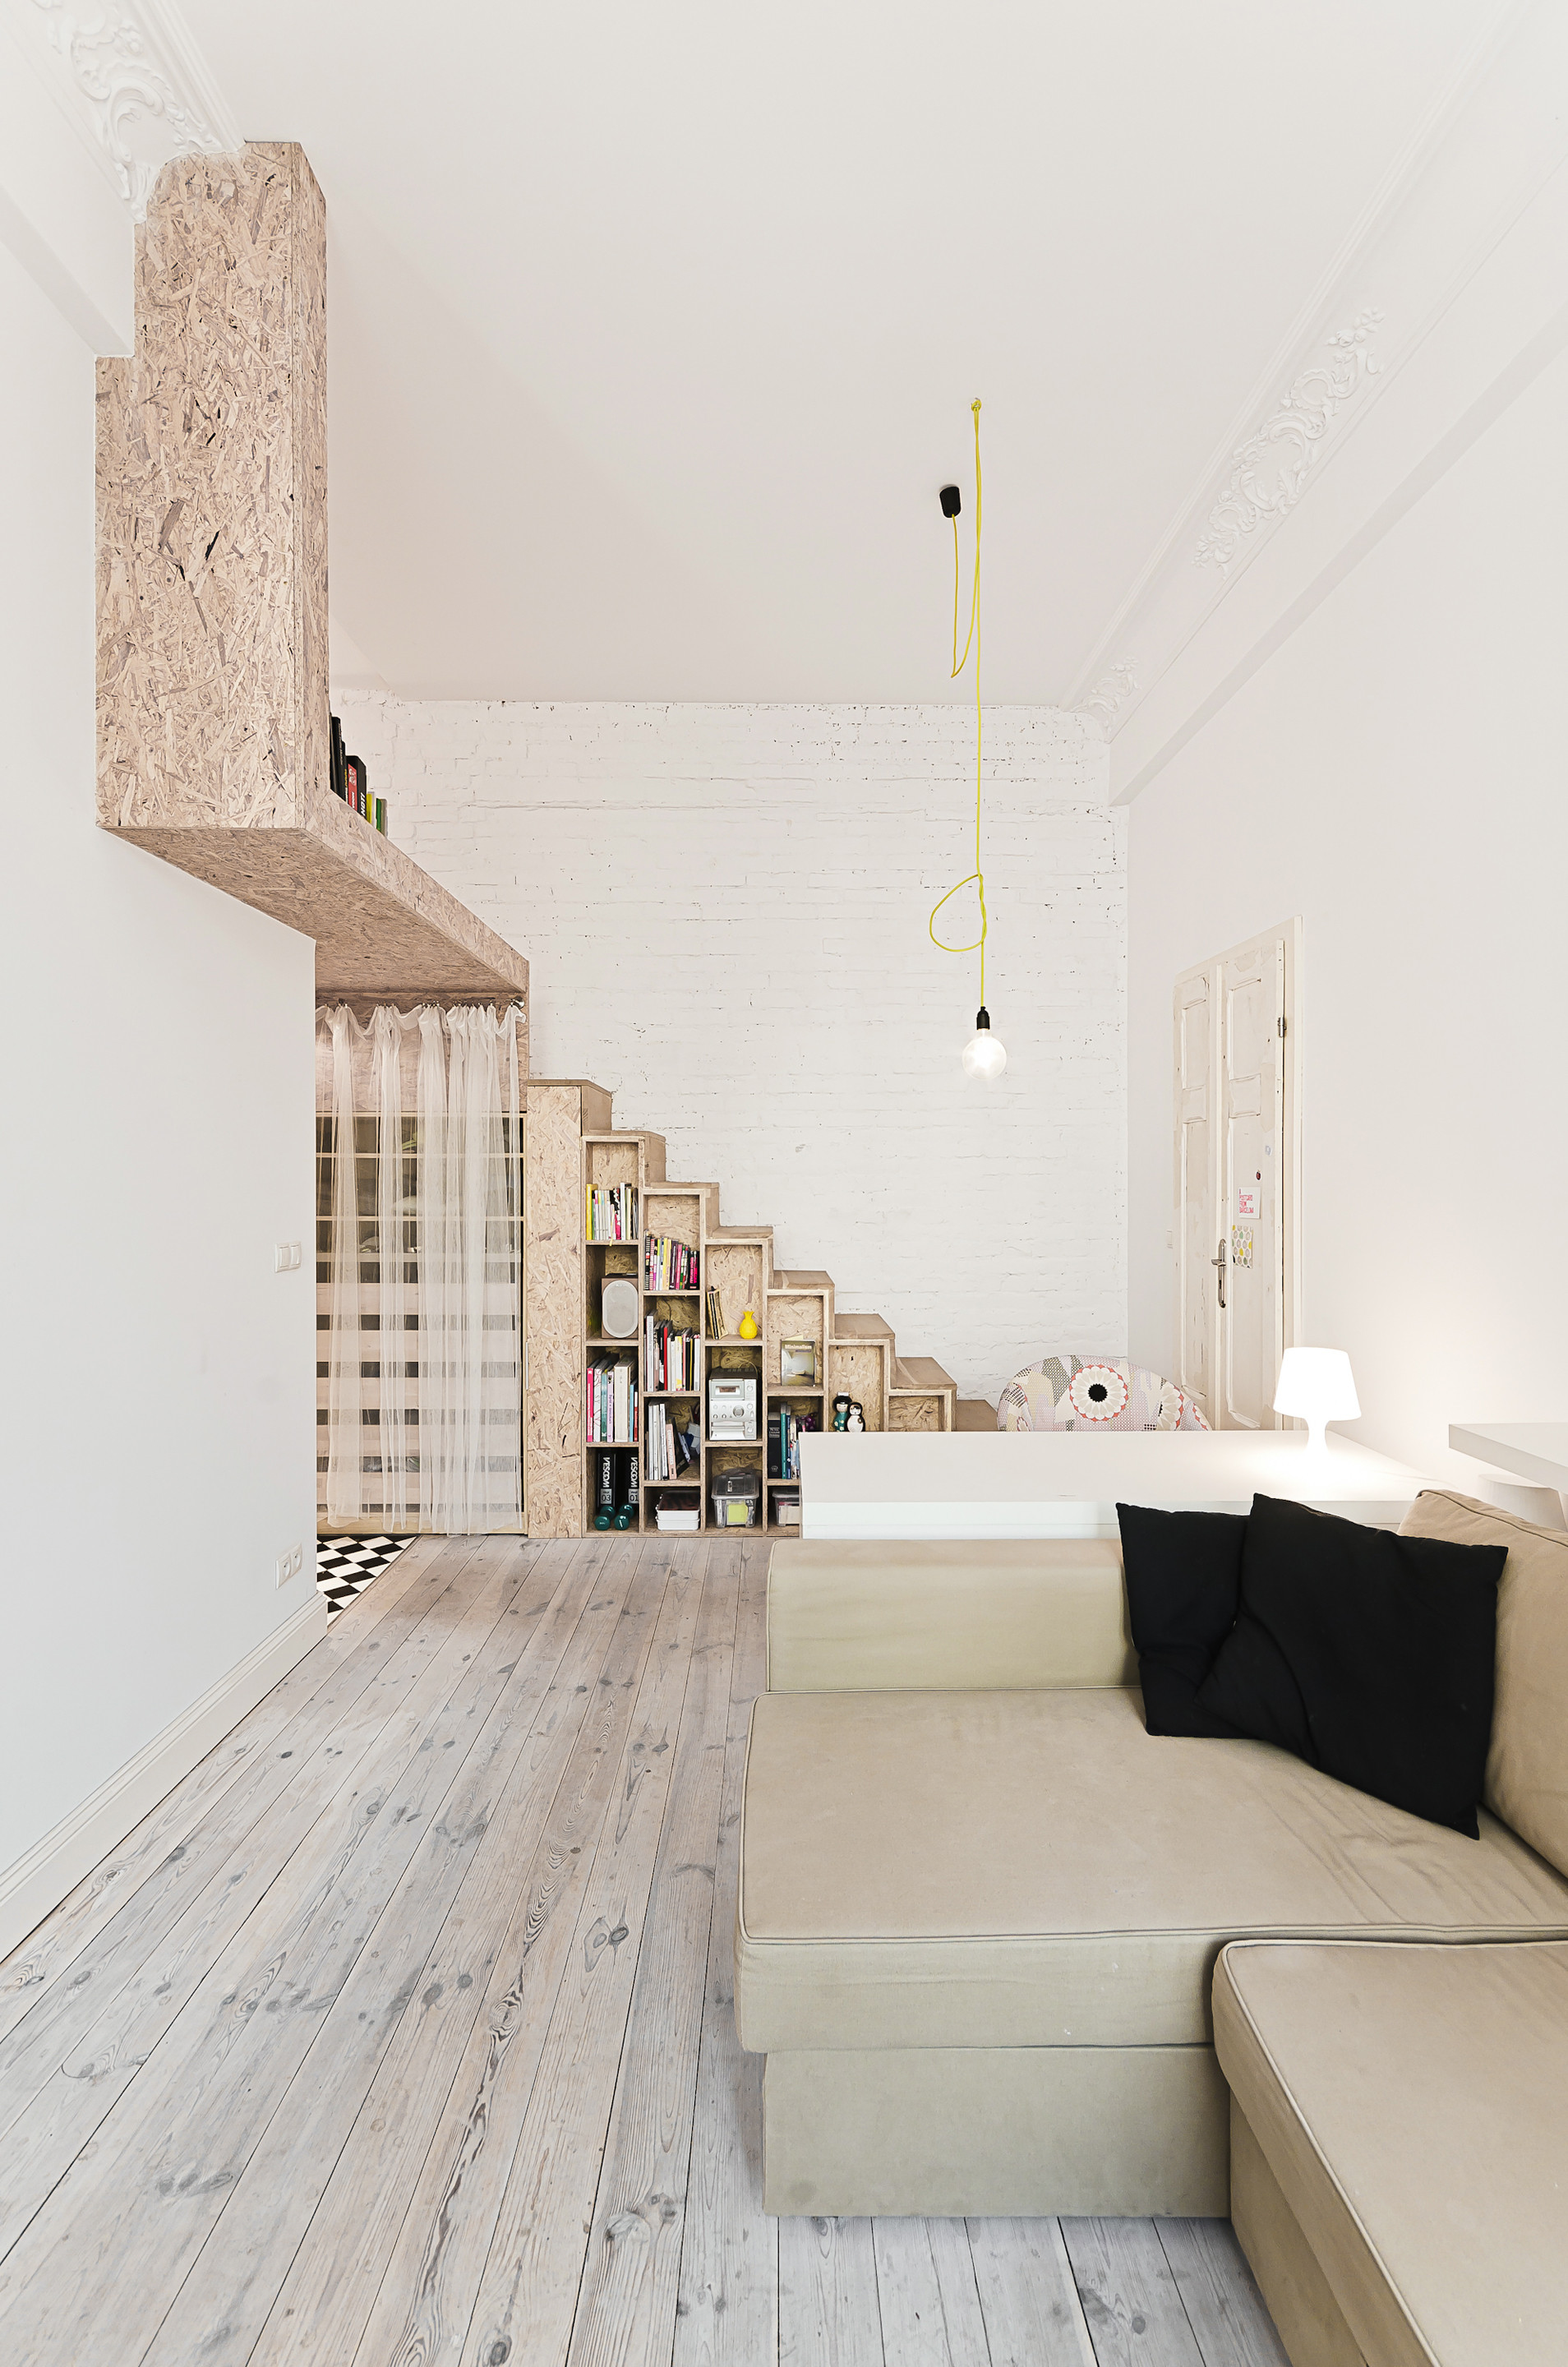 29 sqm 3xa 5 OSB Was Used To Build a Mezzanine in This Tiny 29m² Apartment